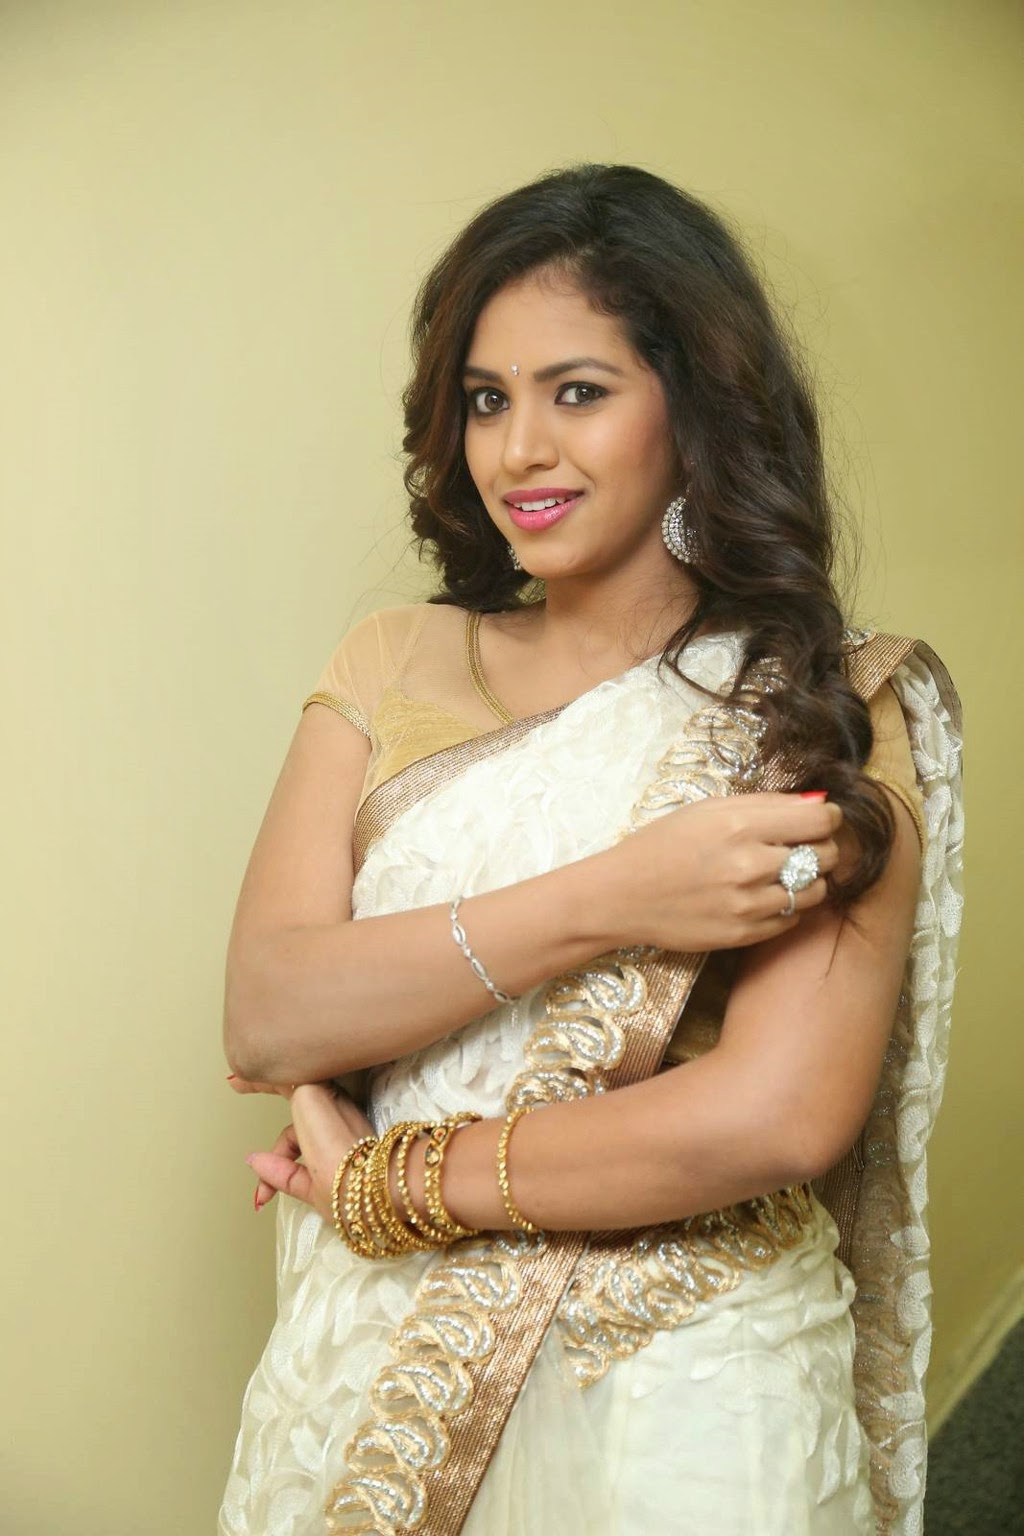 gowthami chowdary glamorous in saree-HQ-Photo-20